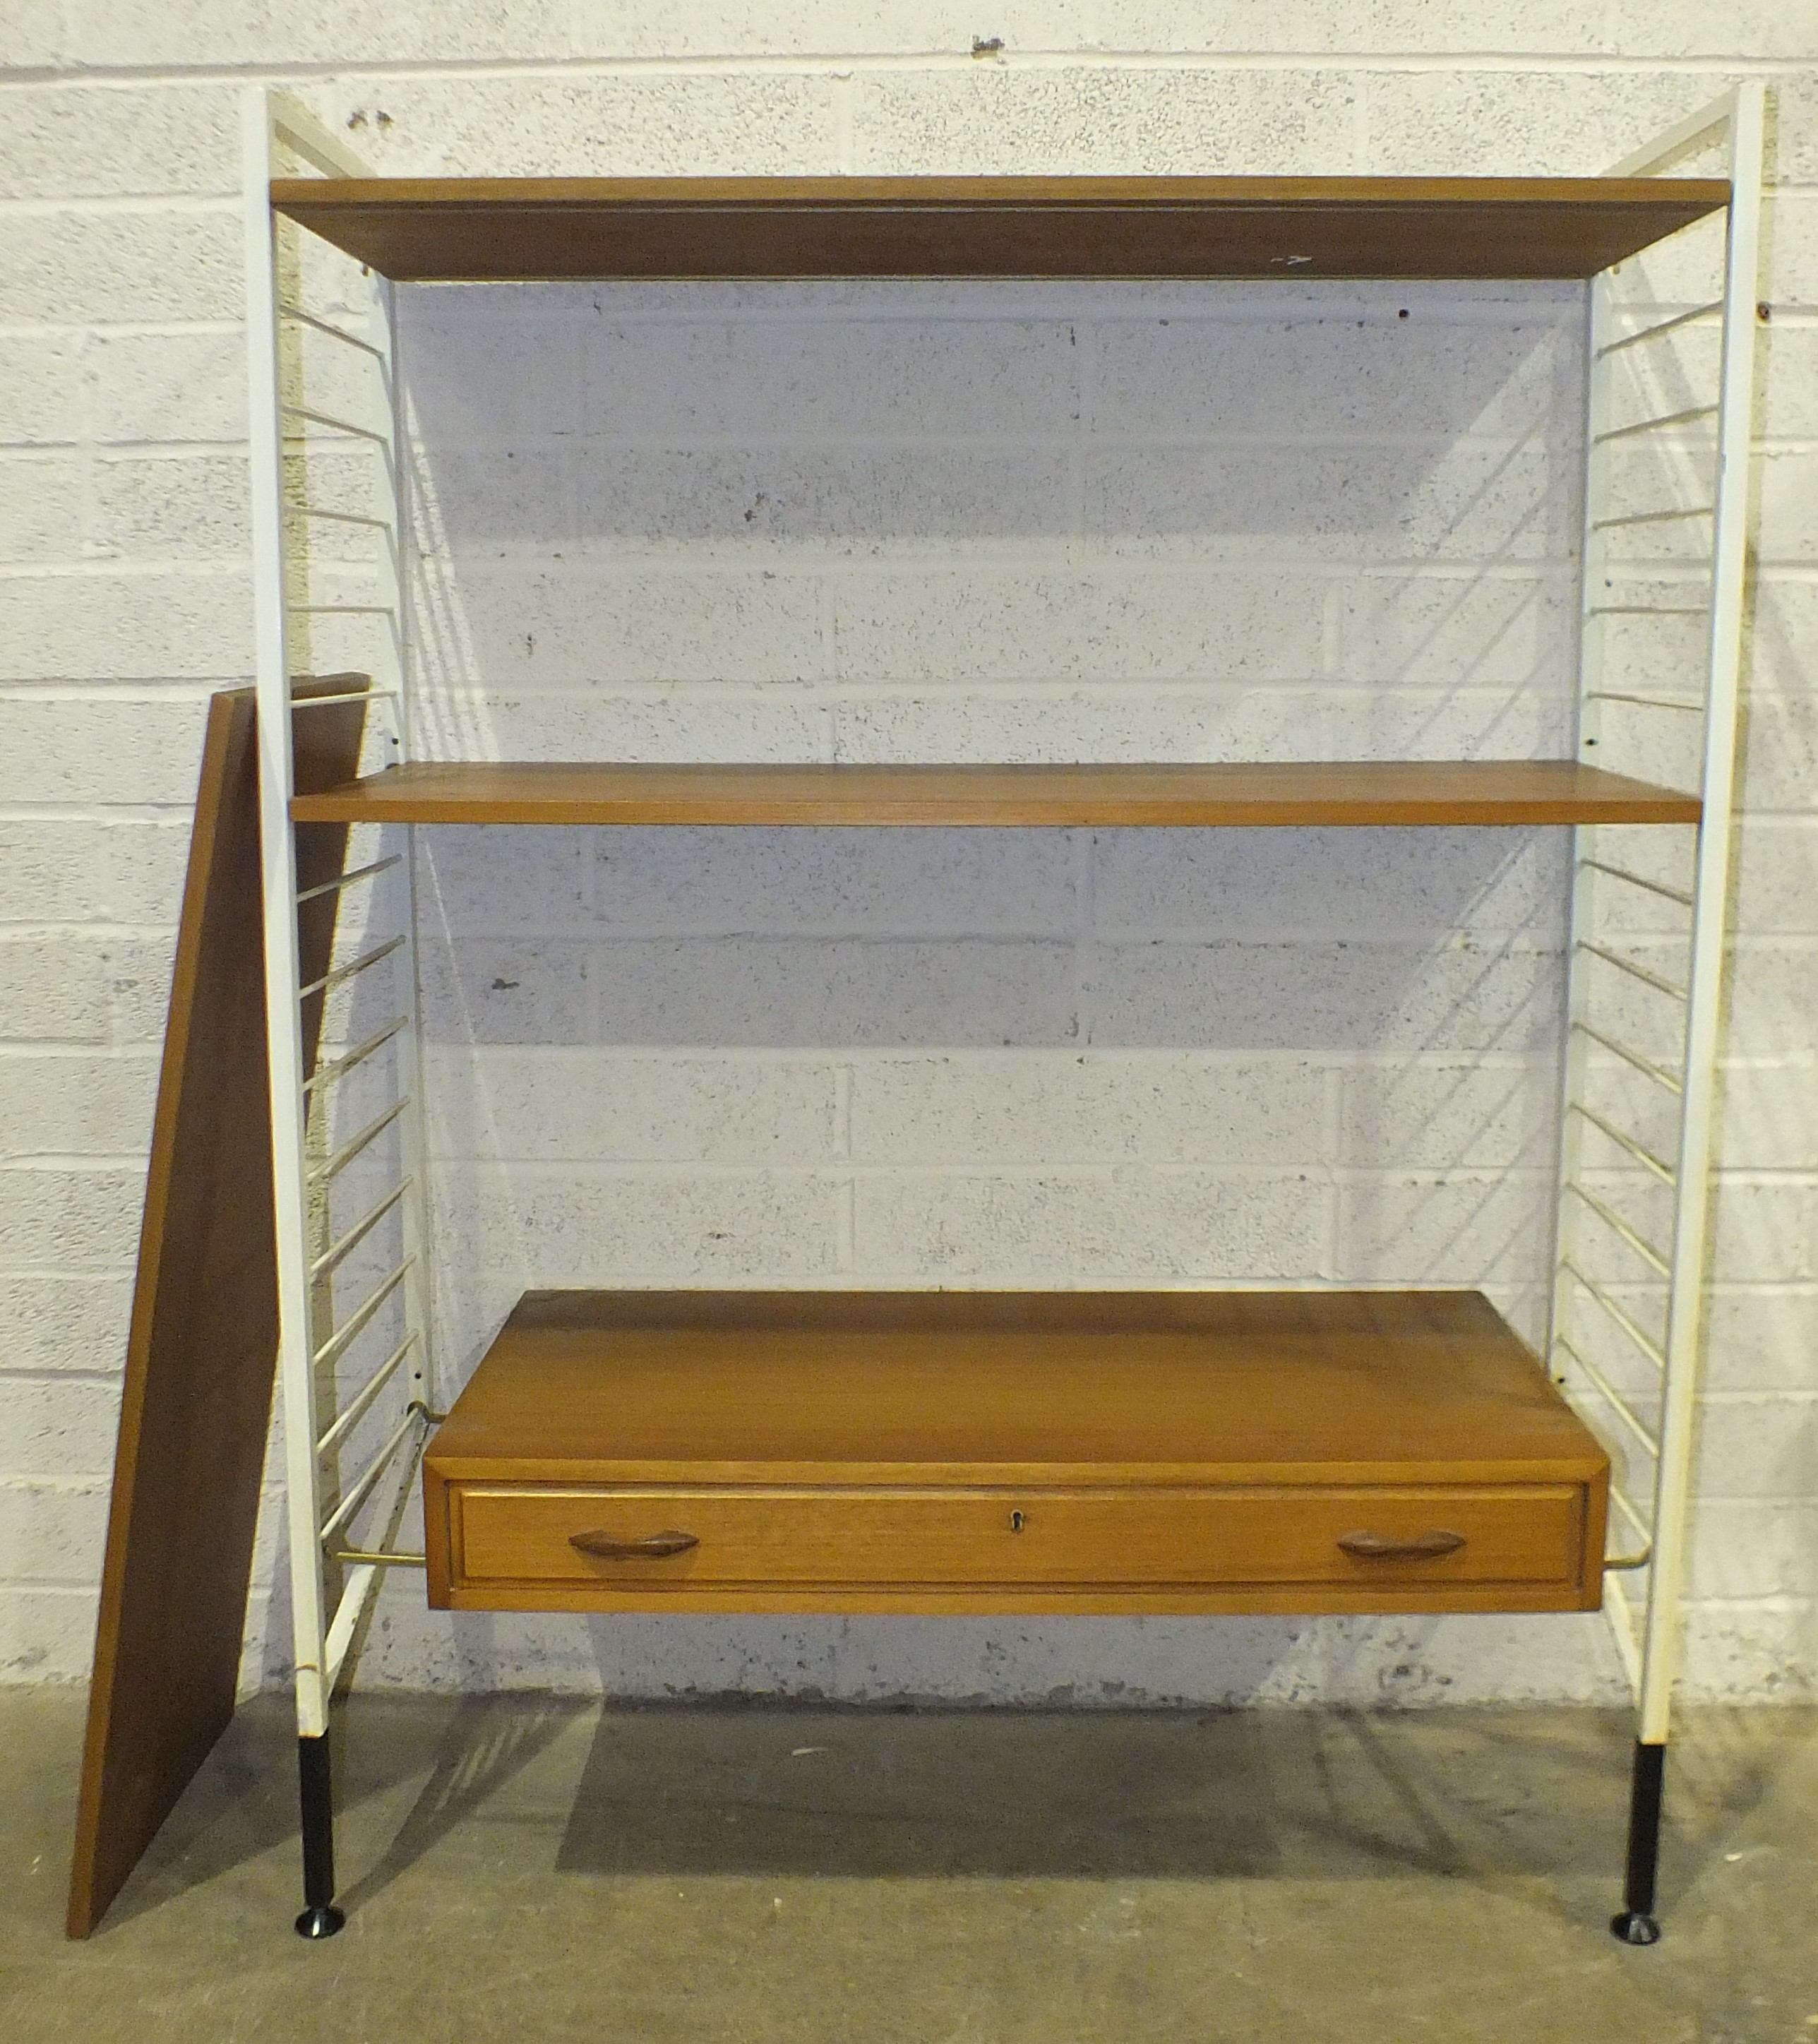 A Ladderax shelf unit, the white metal supports with drawer and three shelves, 90cm wide, 144cm